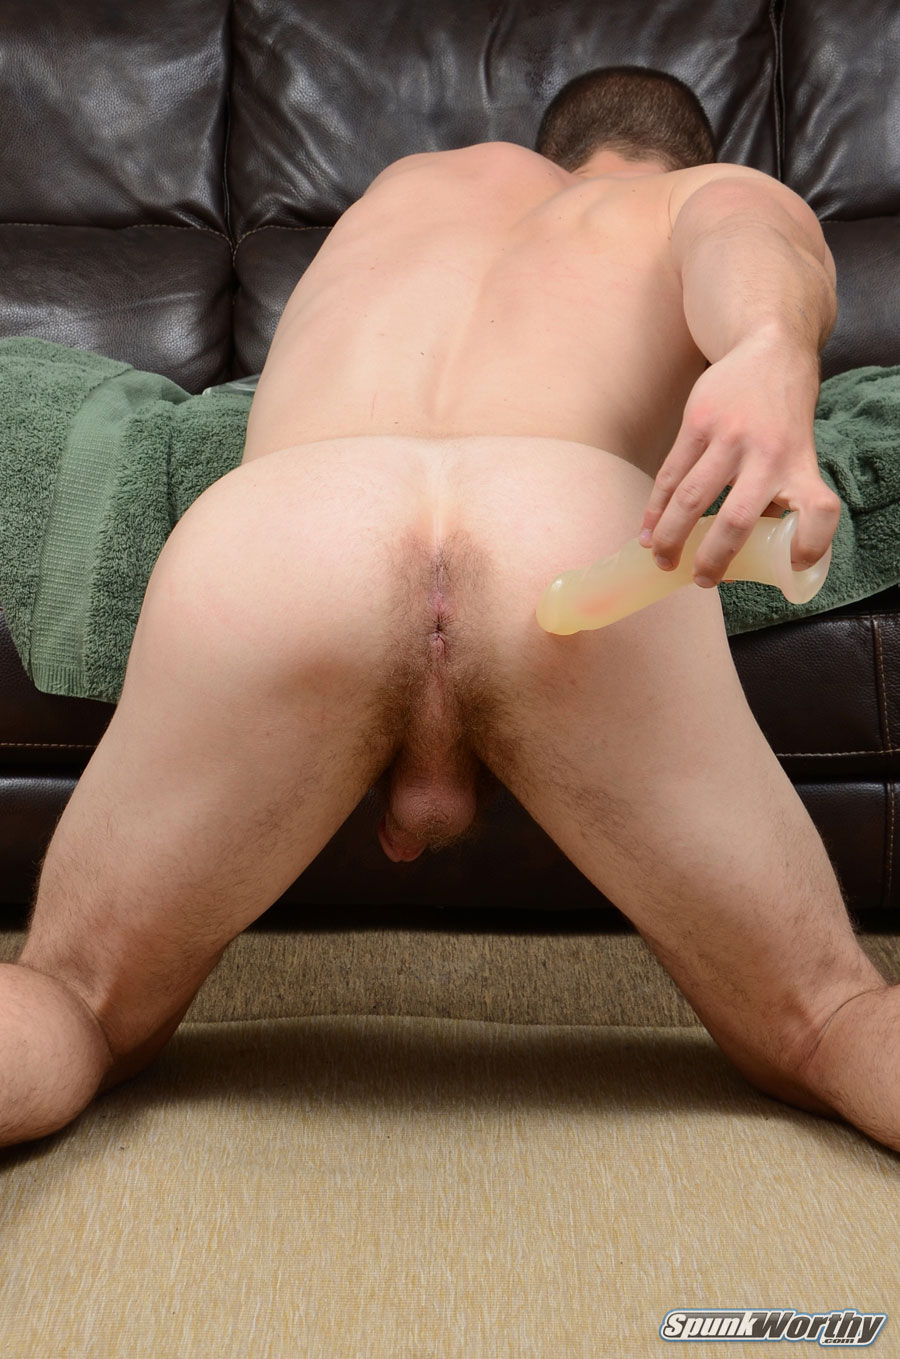 SpunkWorthy-Dean-Straight-Marine-Uses-A-Dildo-On-Hairy-Ass-Amateur-Gay-Porn-09 Ripped Marine Fucks His Striaght Hairy Ass With A Dildo